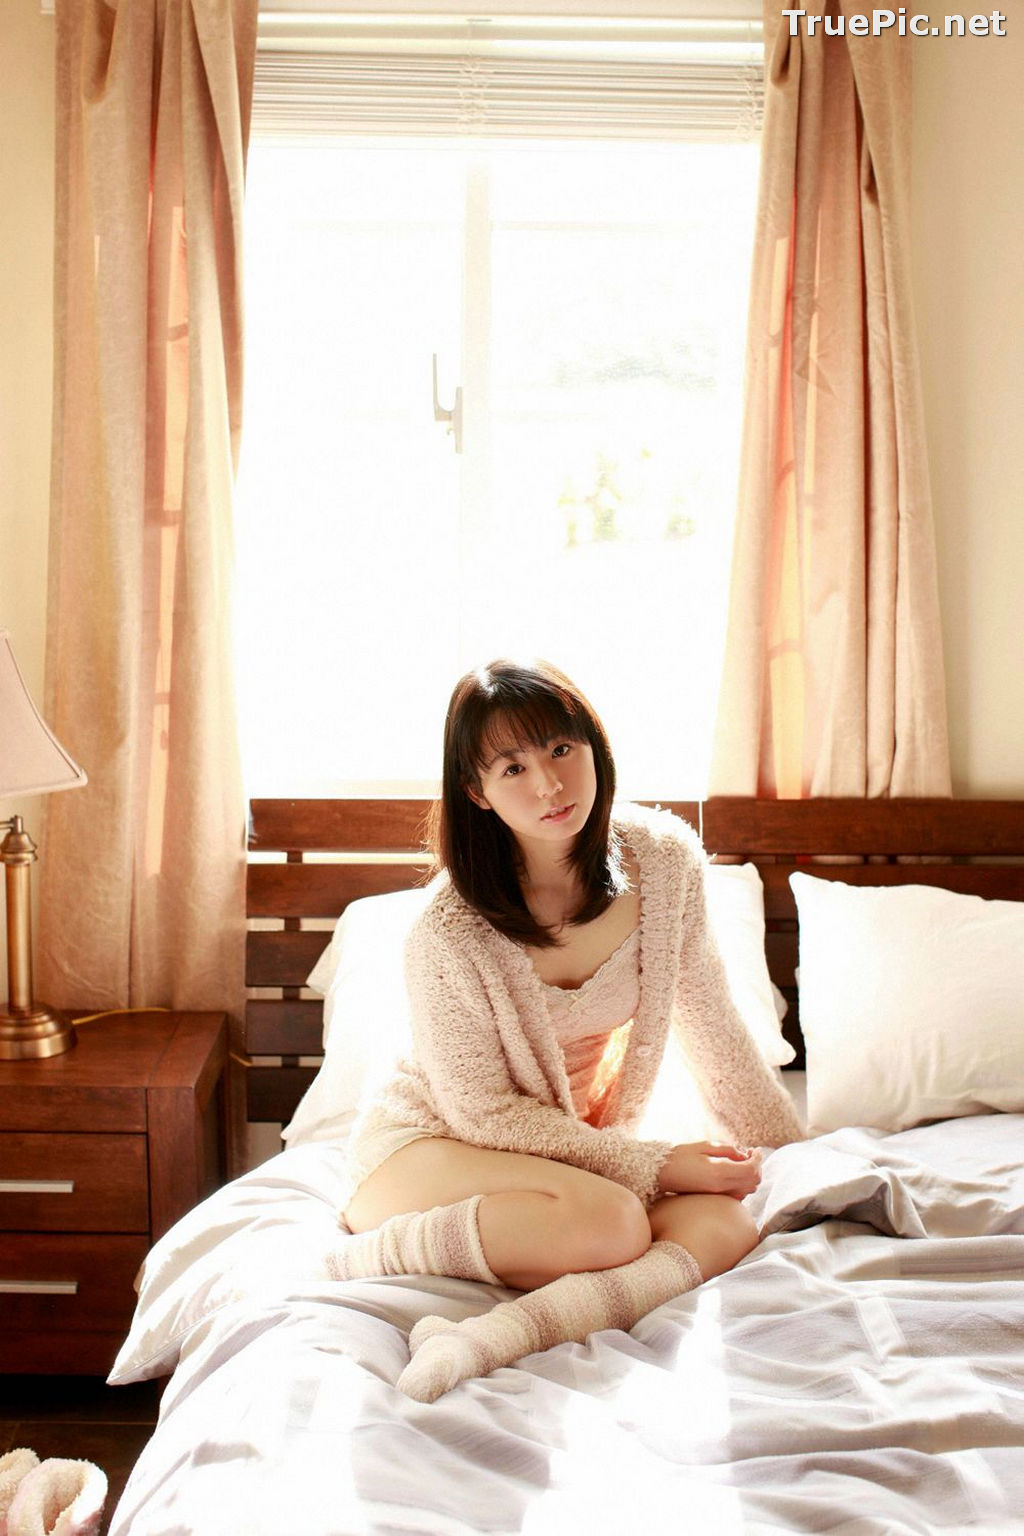 Image [YS Web] Vol.482 - Japanese actress Rina Koike - Graduation Side Story - TruePic.net - Picture-1